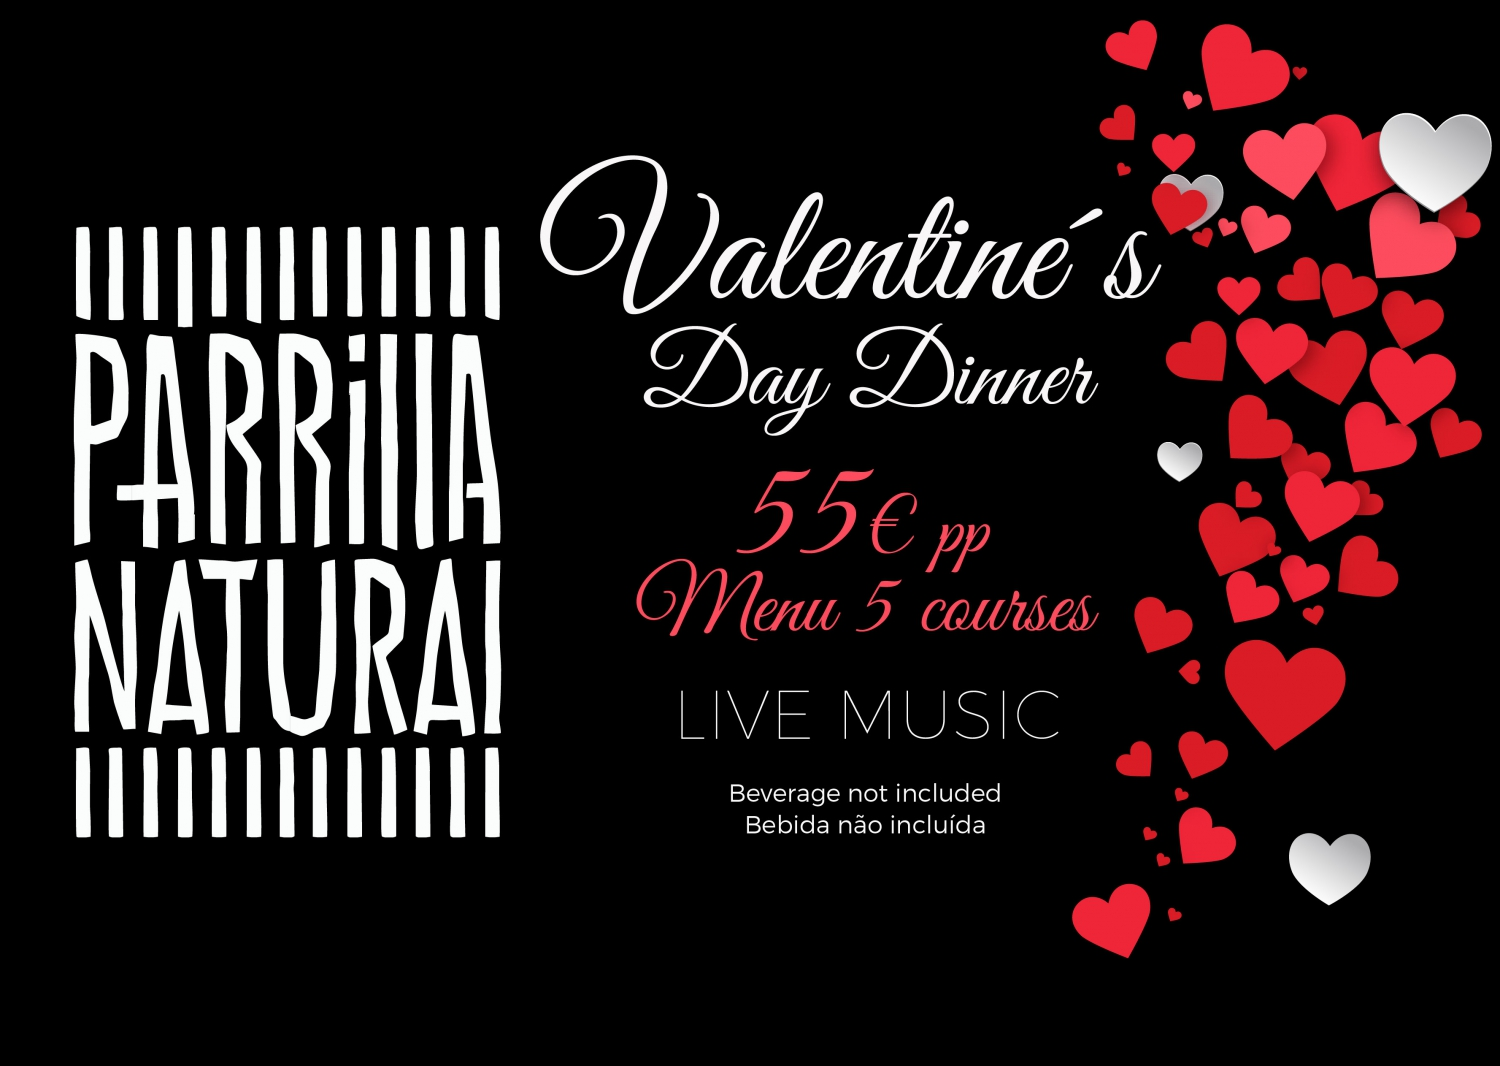 Valentine's Day Dinner at Parrilla Natural